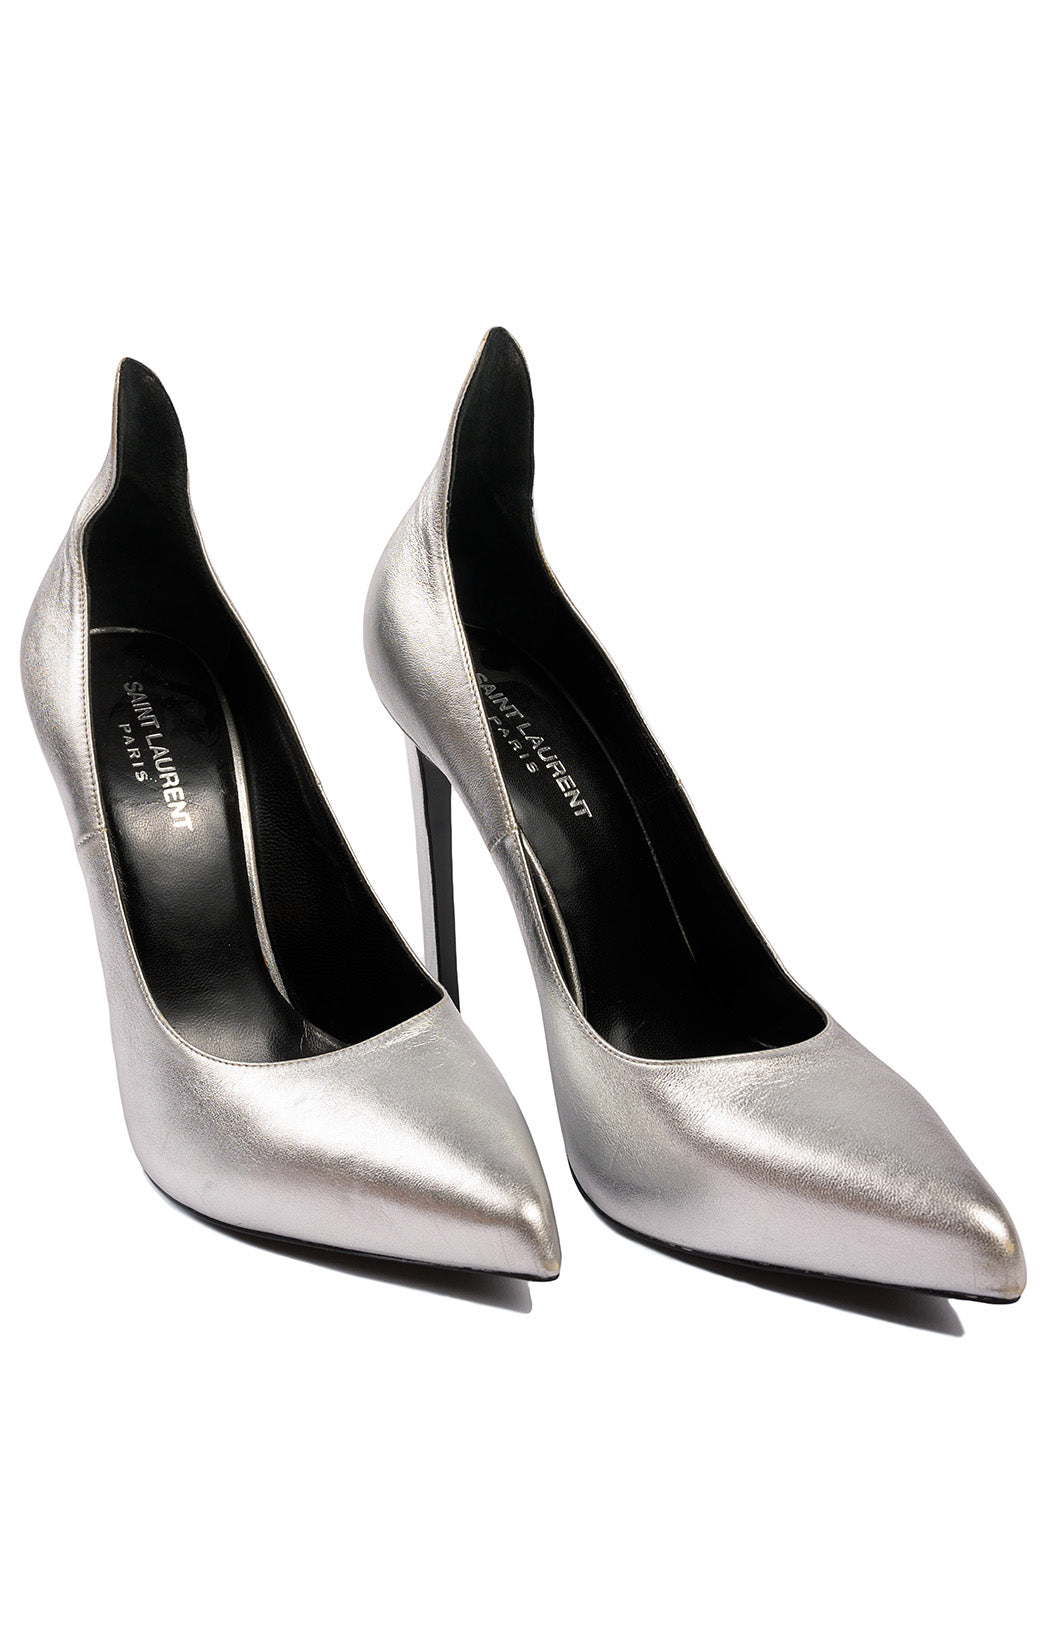 "Silver high heeled (4.75"") pump with high back"